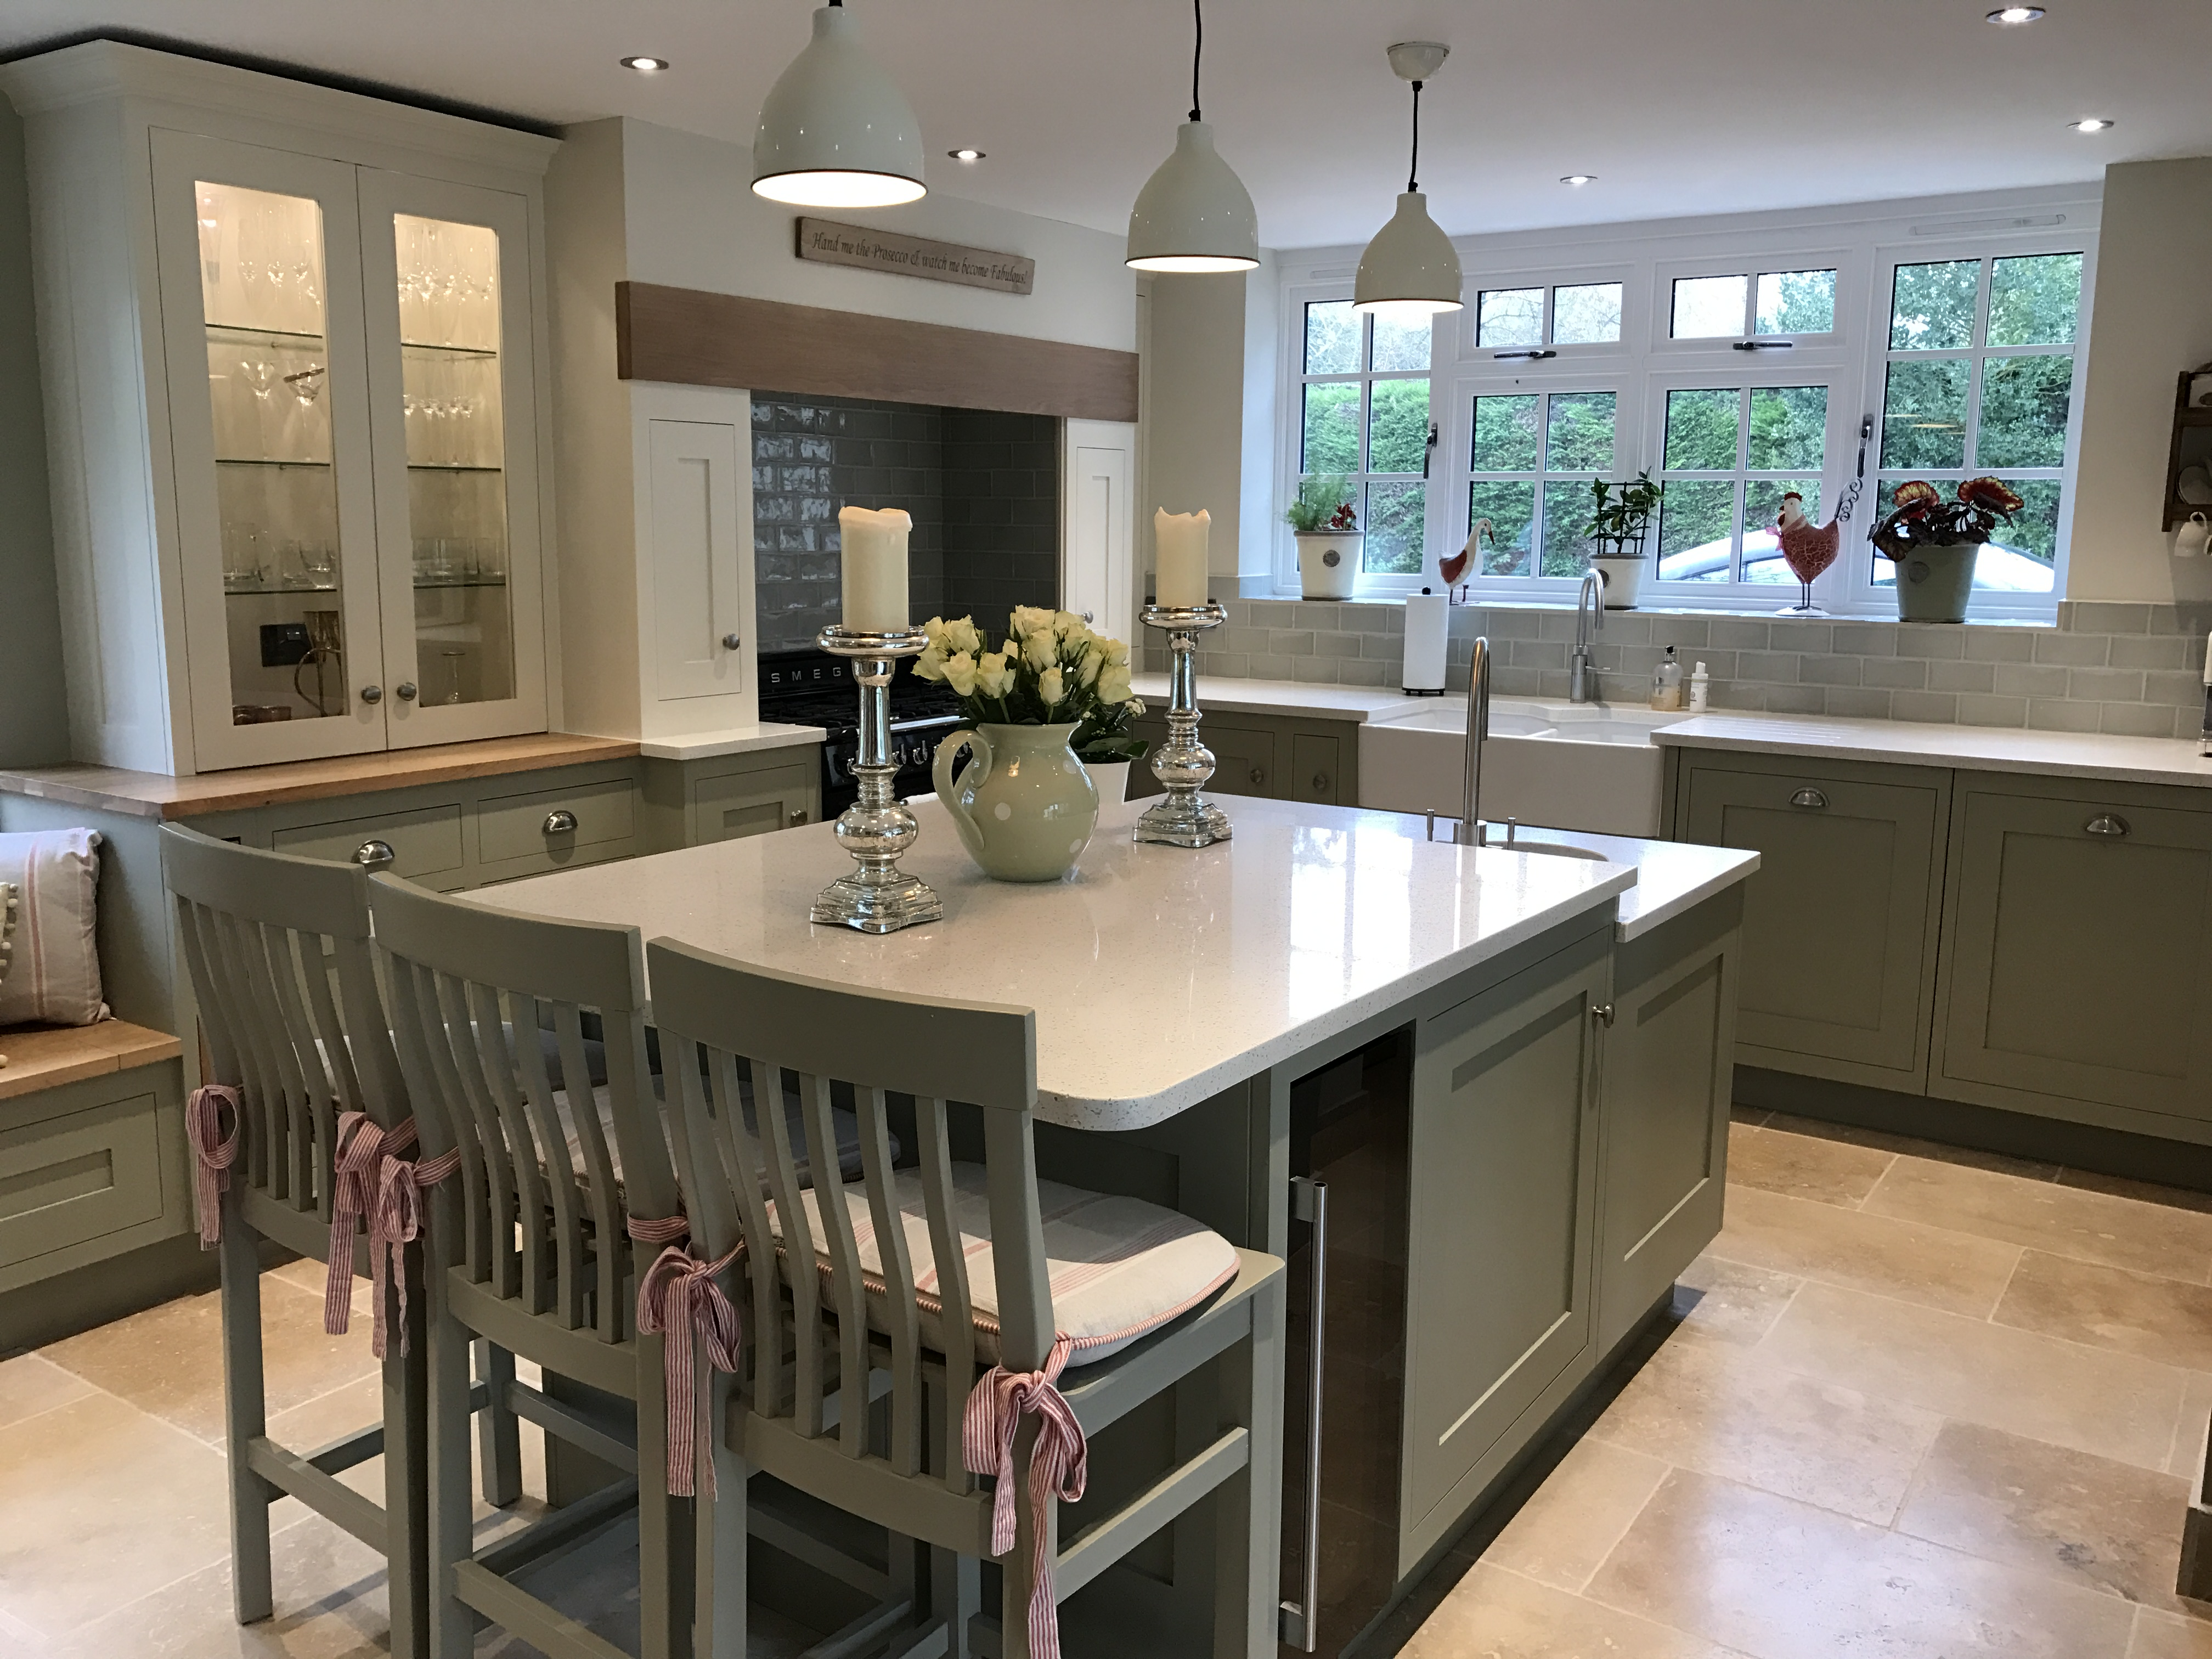 Bespoke-kitchen-island-Guilden Morden